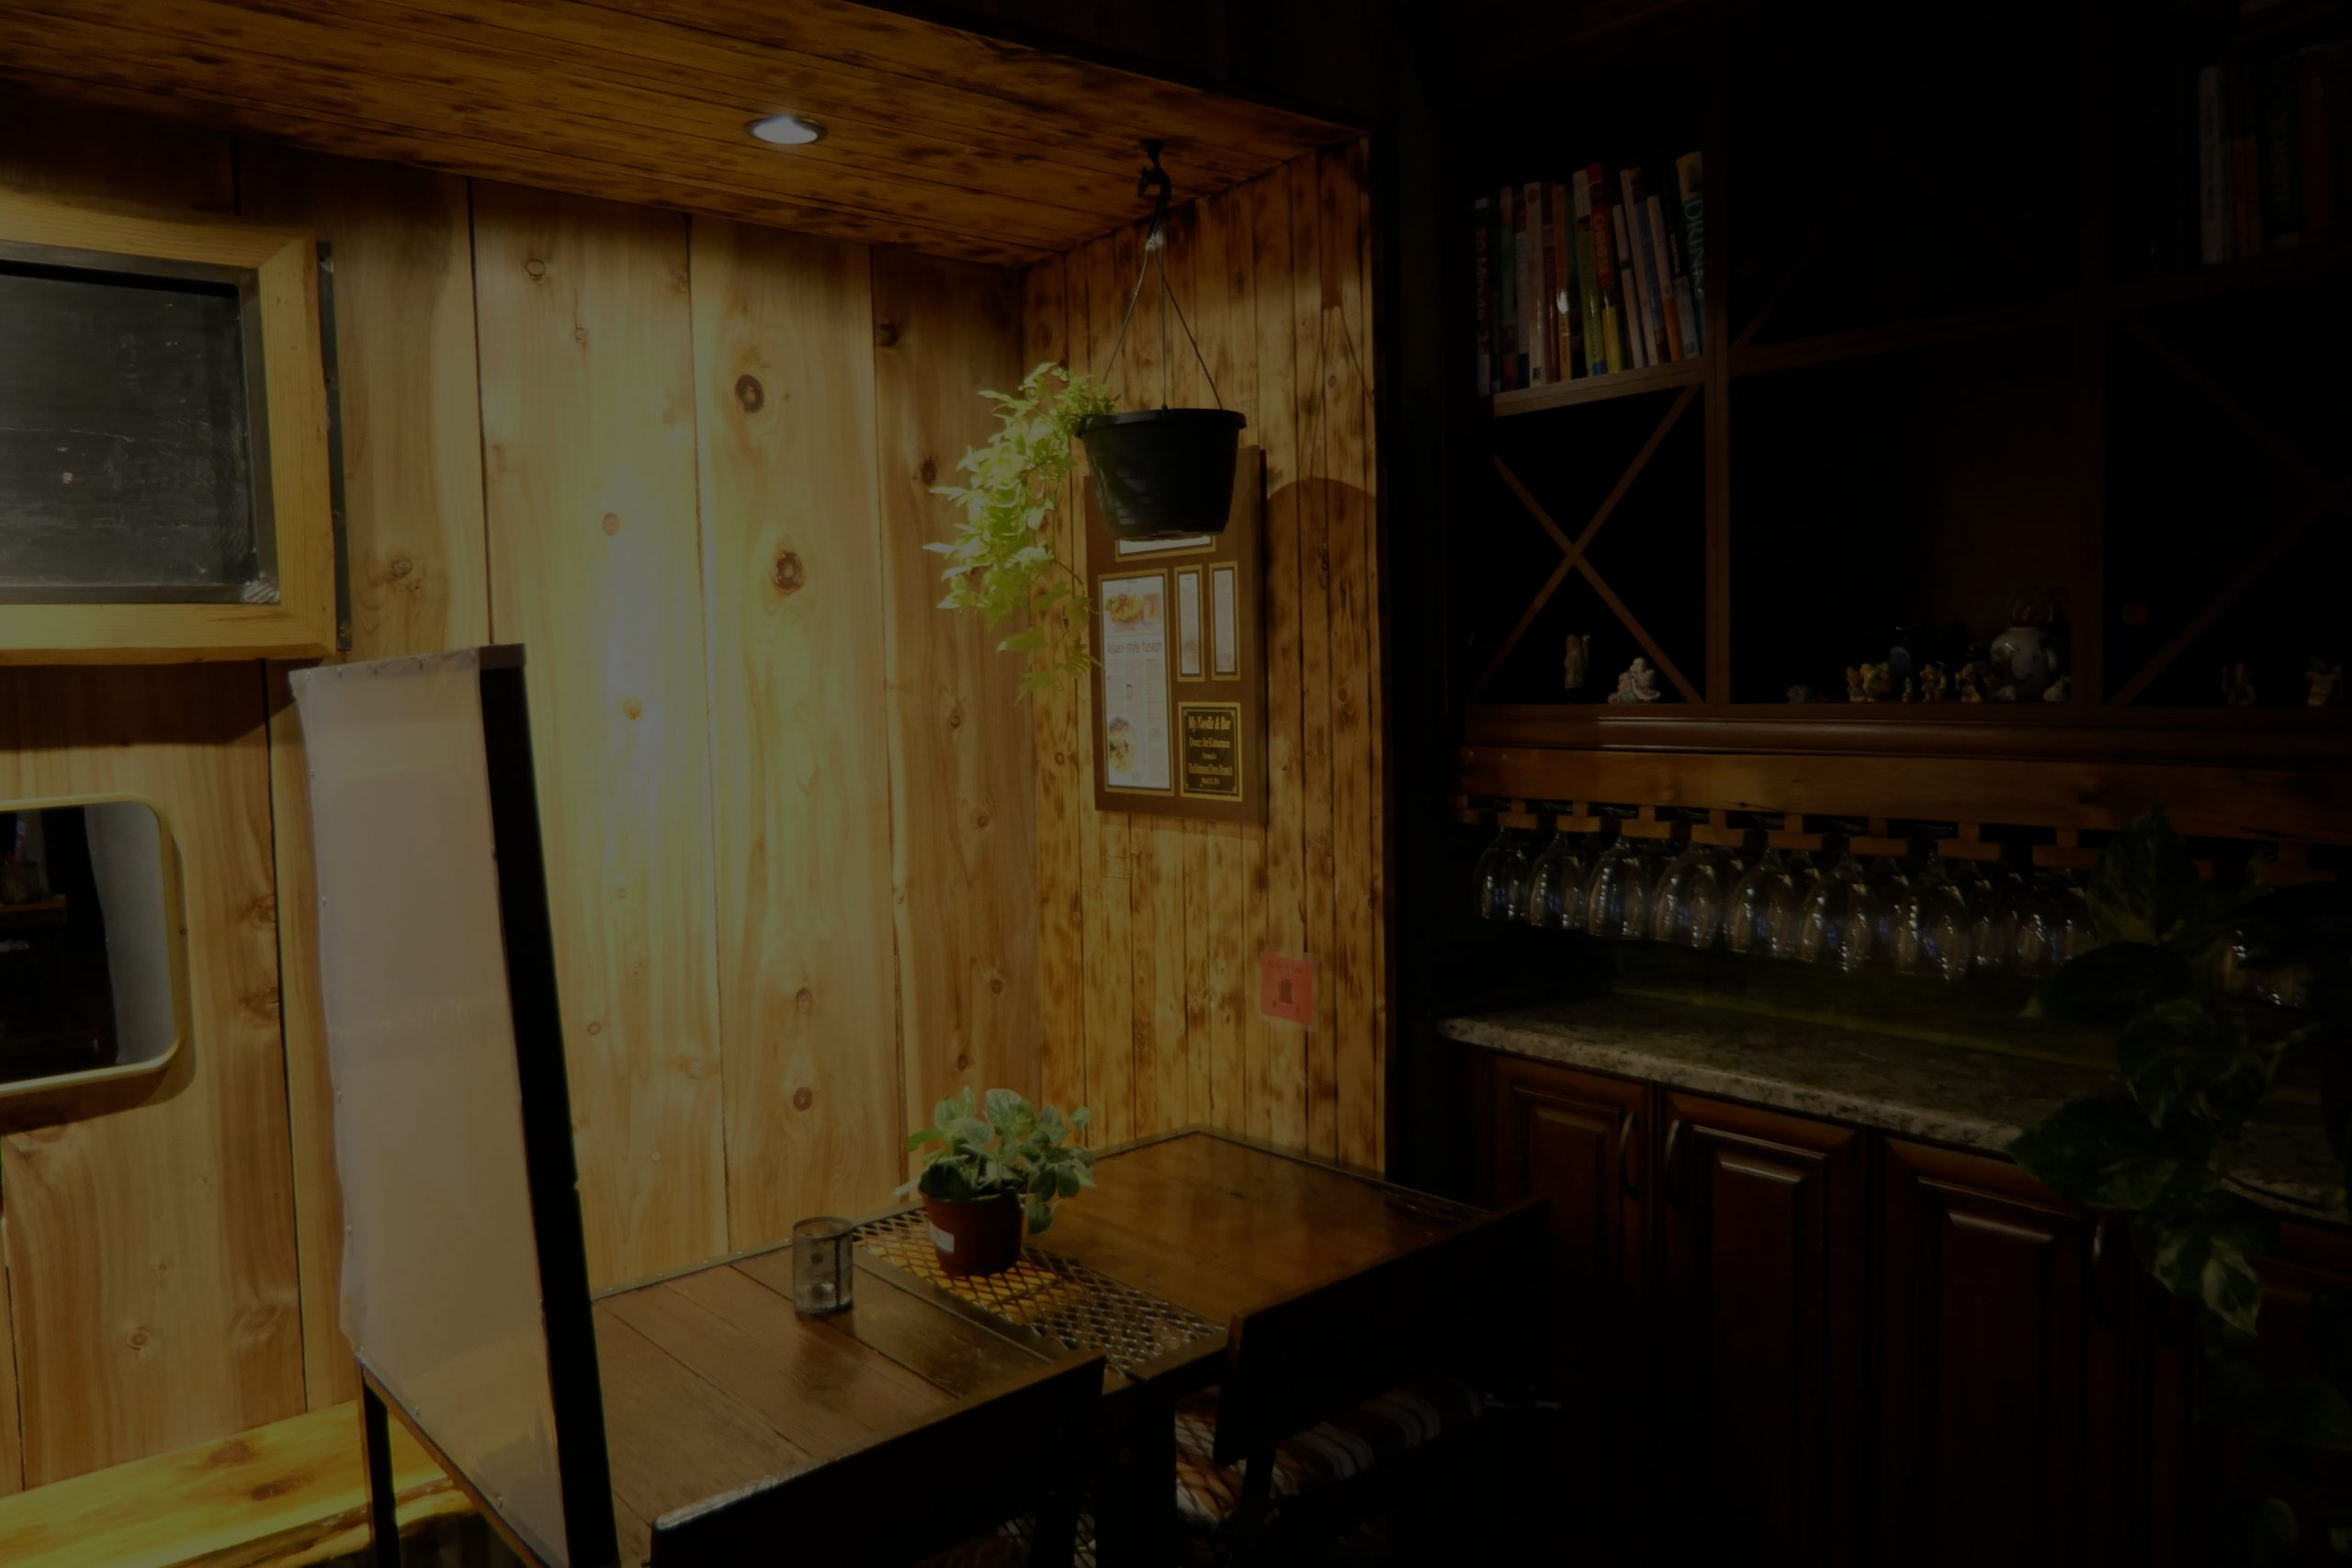 Slider image #4, dim corner area for private meals and dates